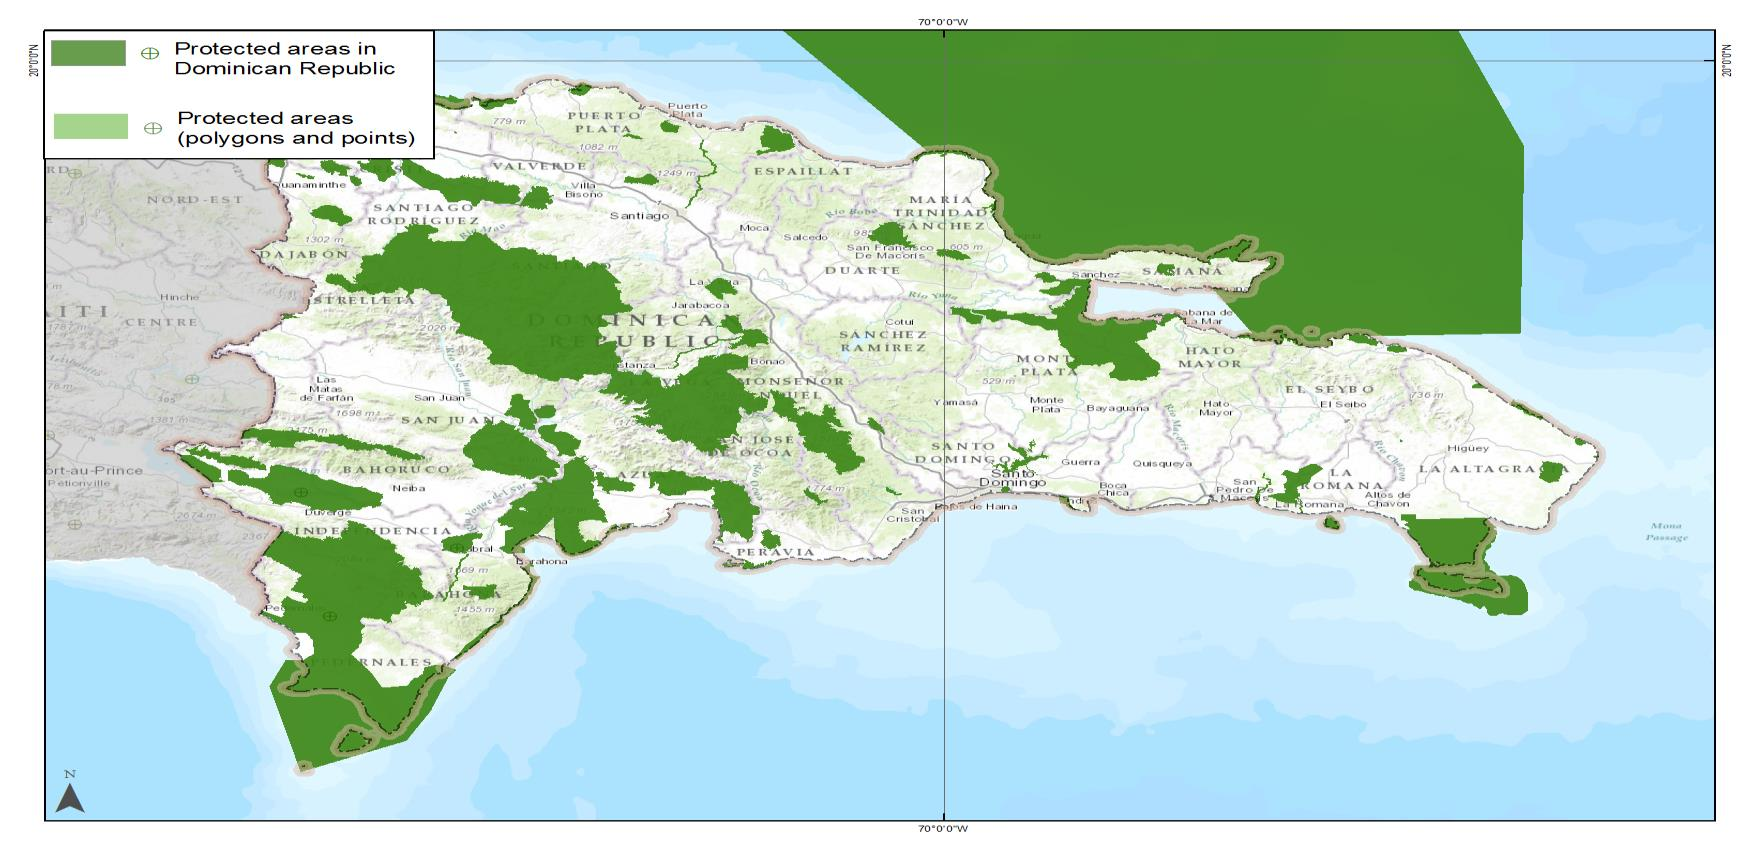 WDPA Data Status Report About this Report and the World Database on Protected Areas (WDPA) Map showing protected areas in the WDPA Dominican Republic January 2015 The WDPA is the most comprehensive